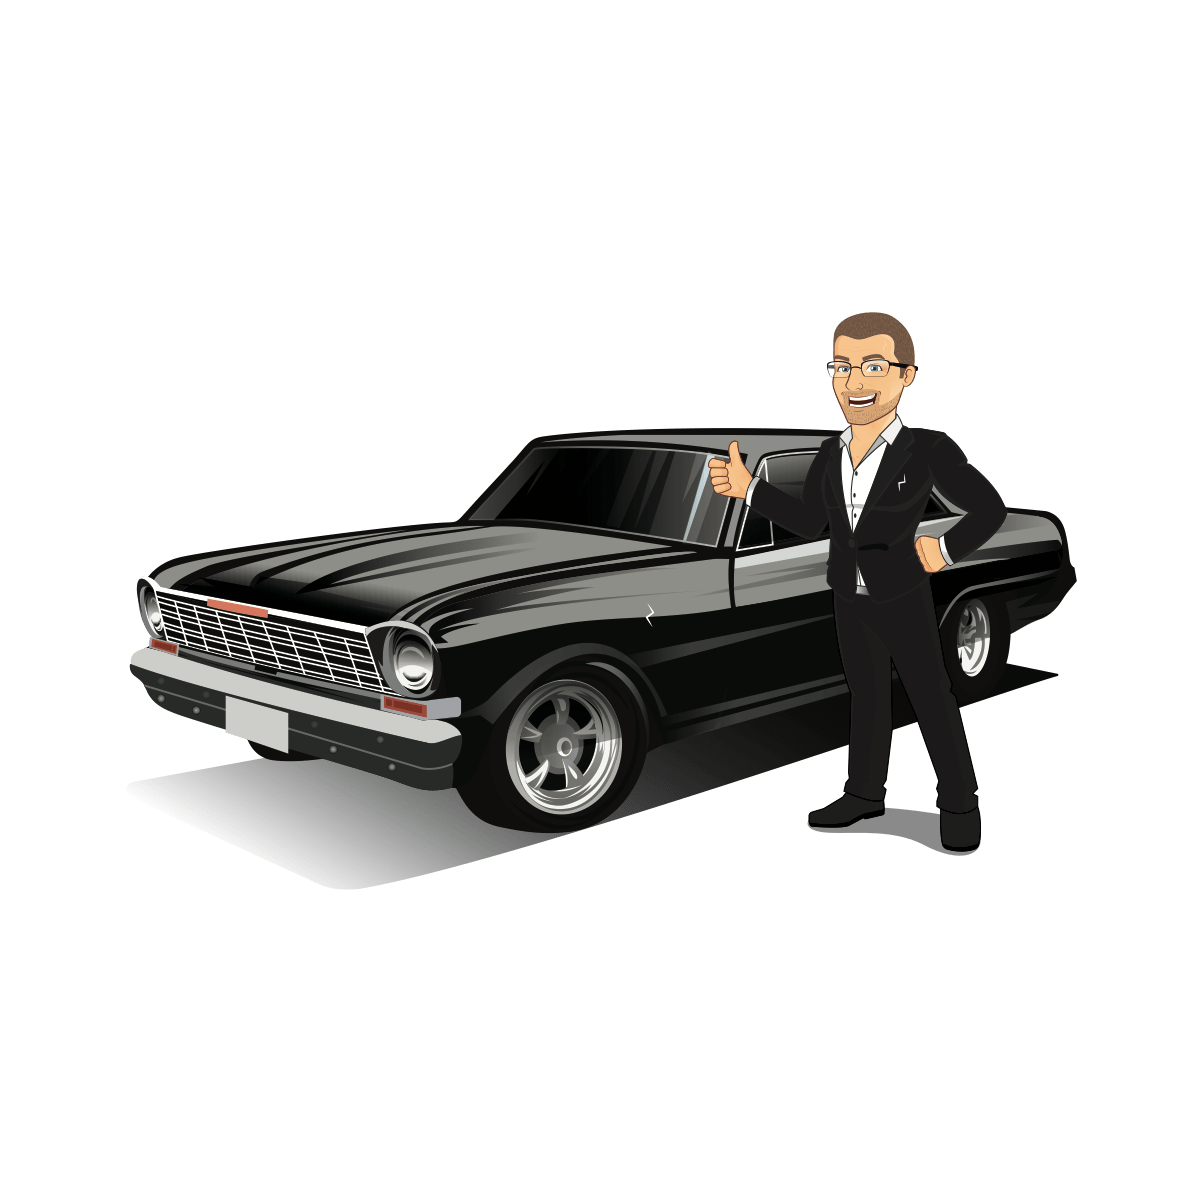 john c ashworth emoji with chevy nova